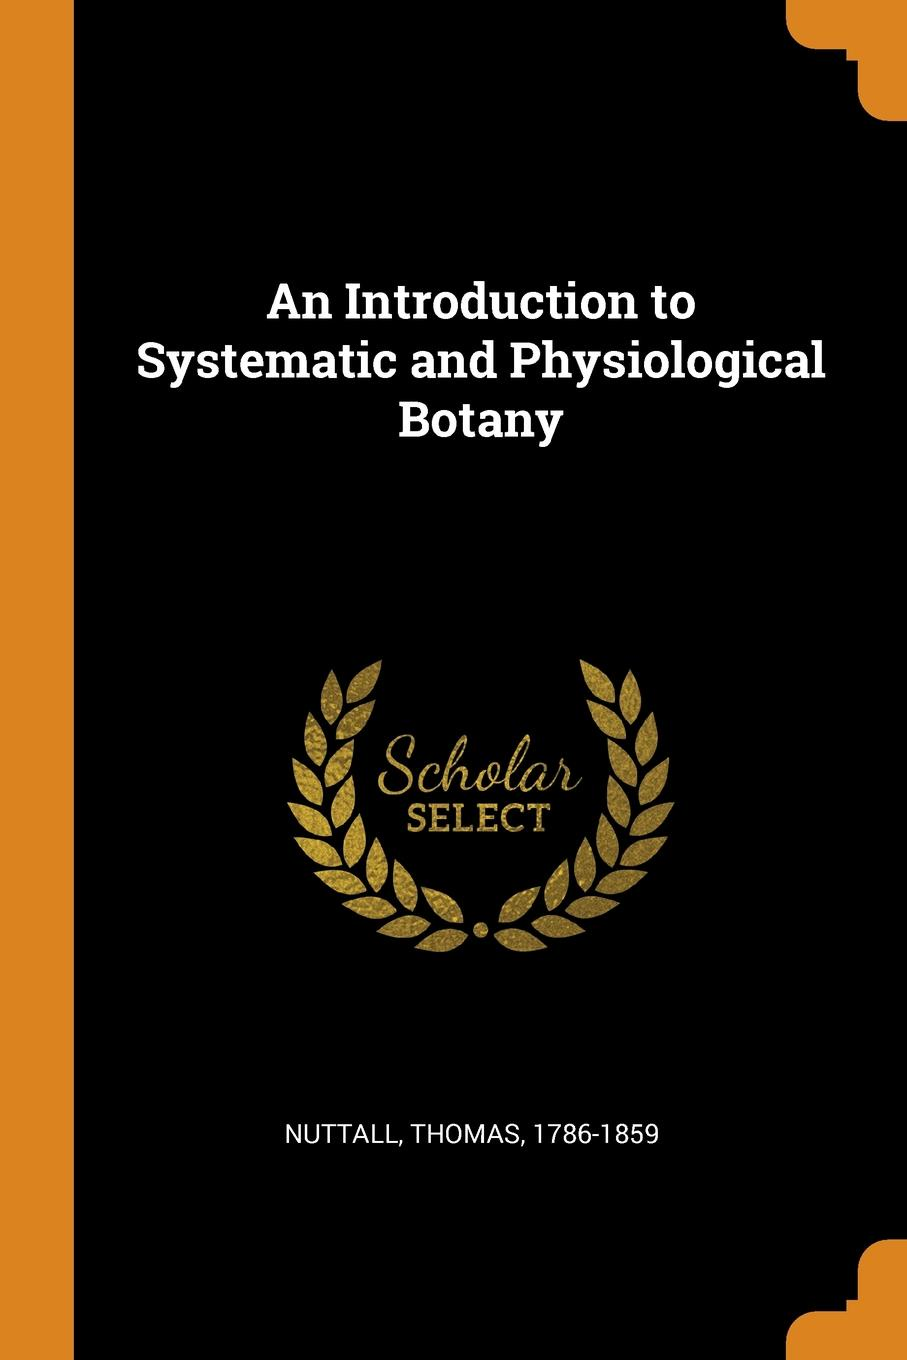 Thomas Nuttall An Introduction to Systematic and Physiological Botany castle thomas an introduction to medical botany